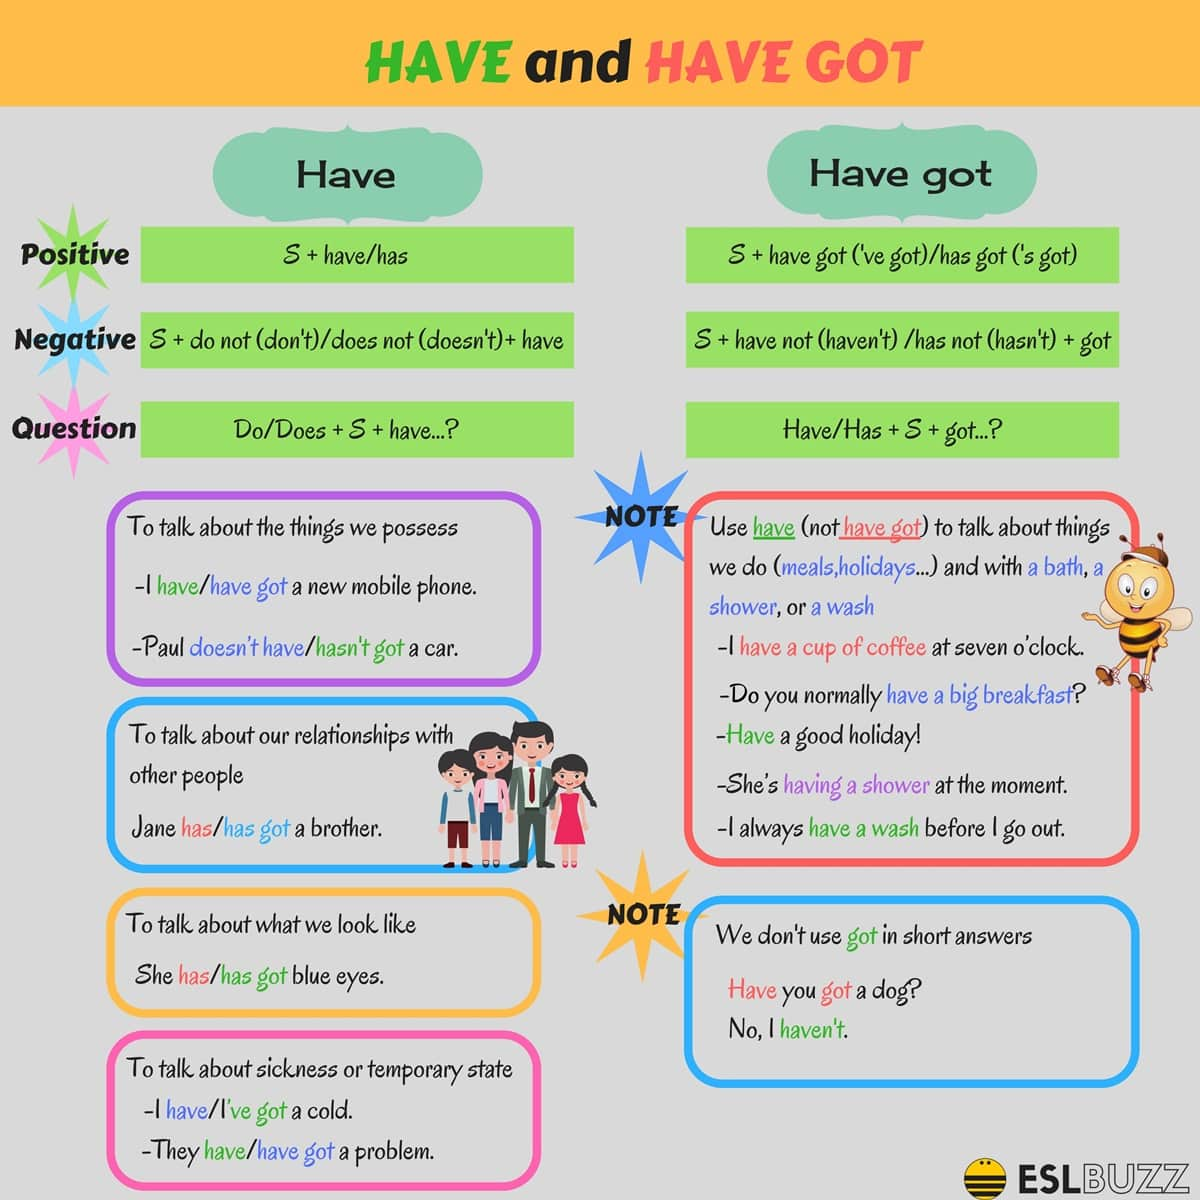 Have and HaveGot